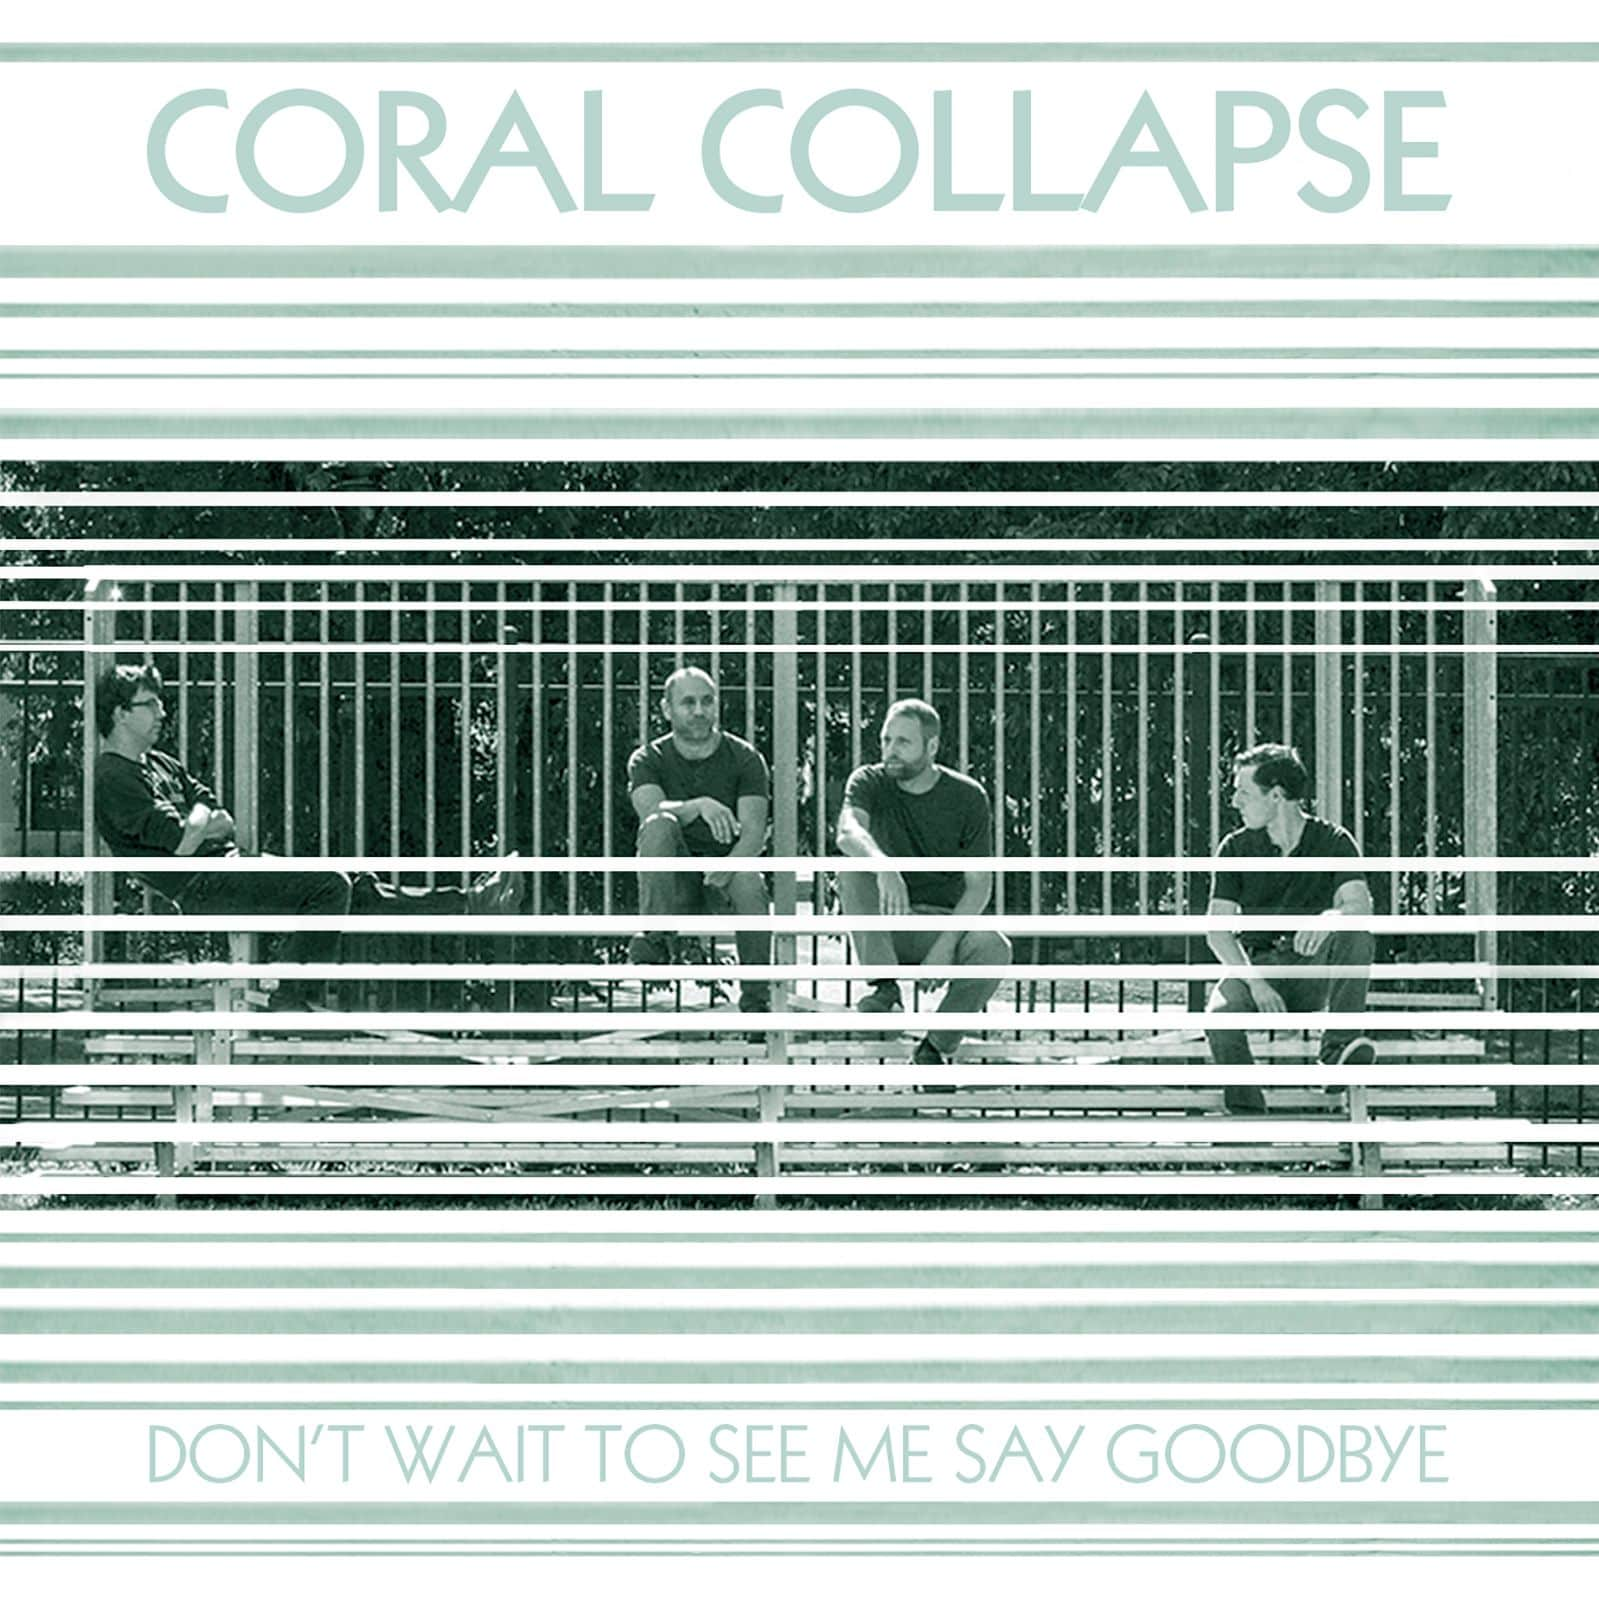 Coral Collapse Never Go, Pickymagazine, Picky Magazin, Online, Musik, Indie Musik Magazin, Dream Pop, Blog, Blogger